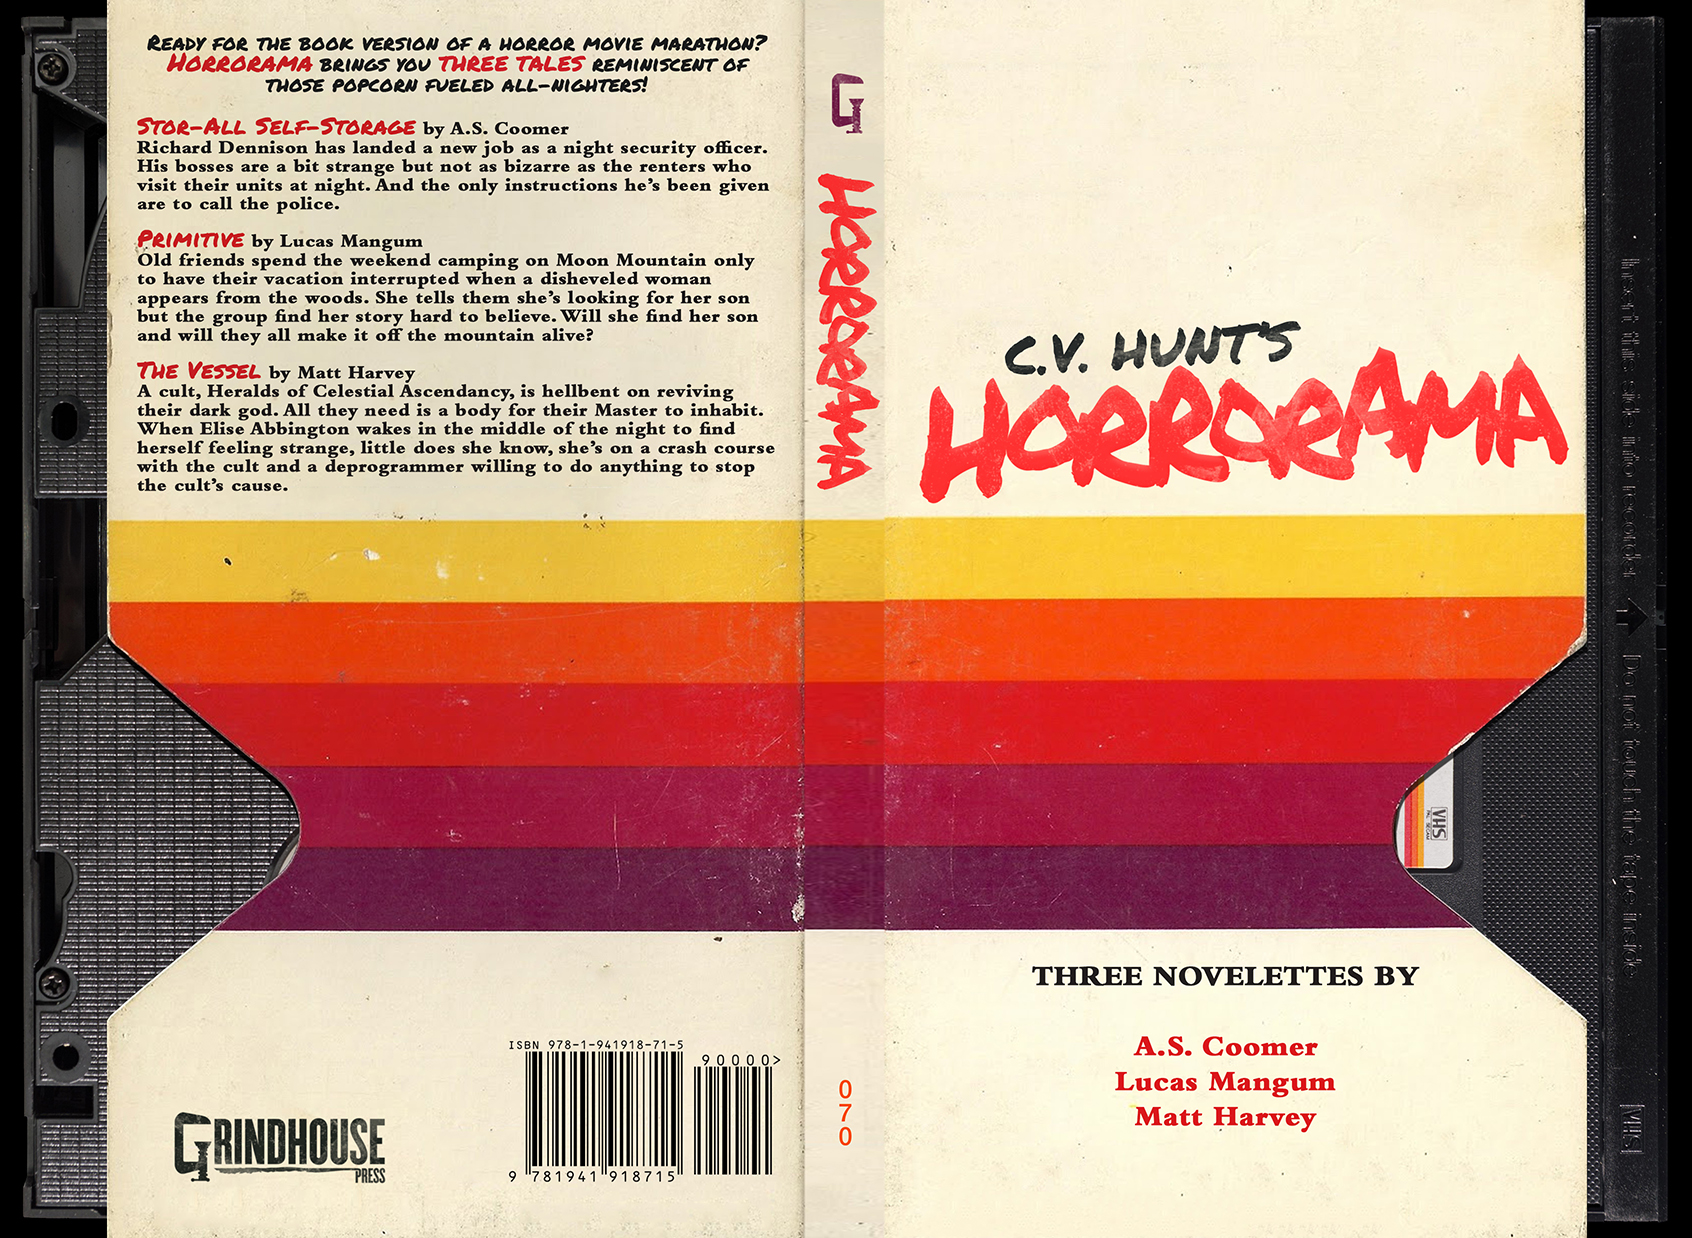 c.v.-hunts-horrorama-full-jacket-1